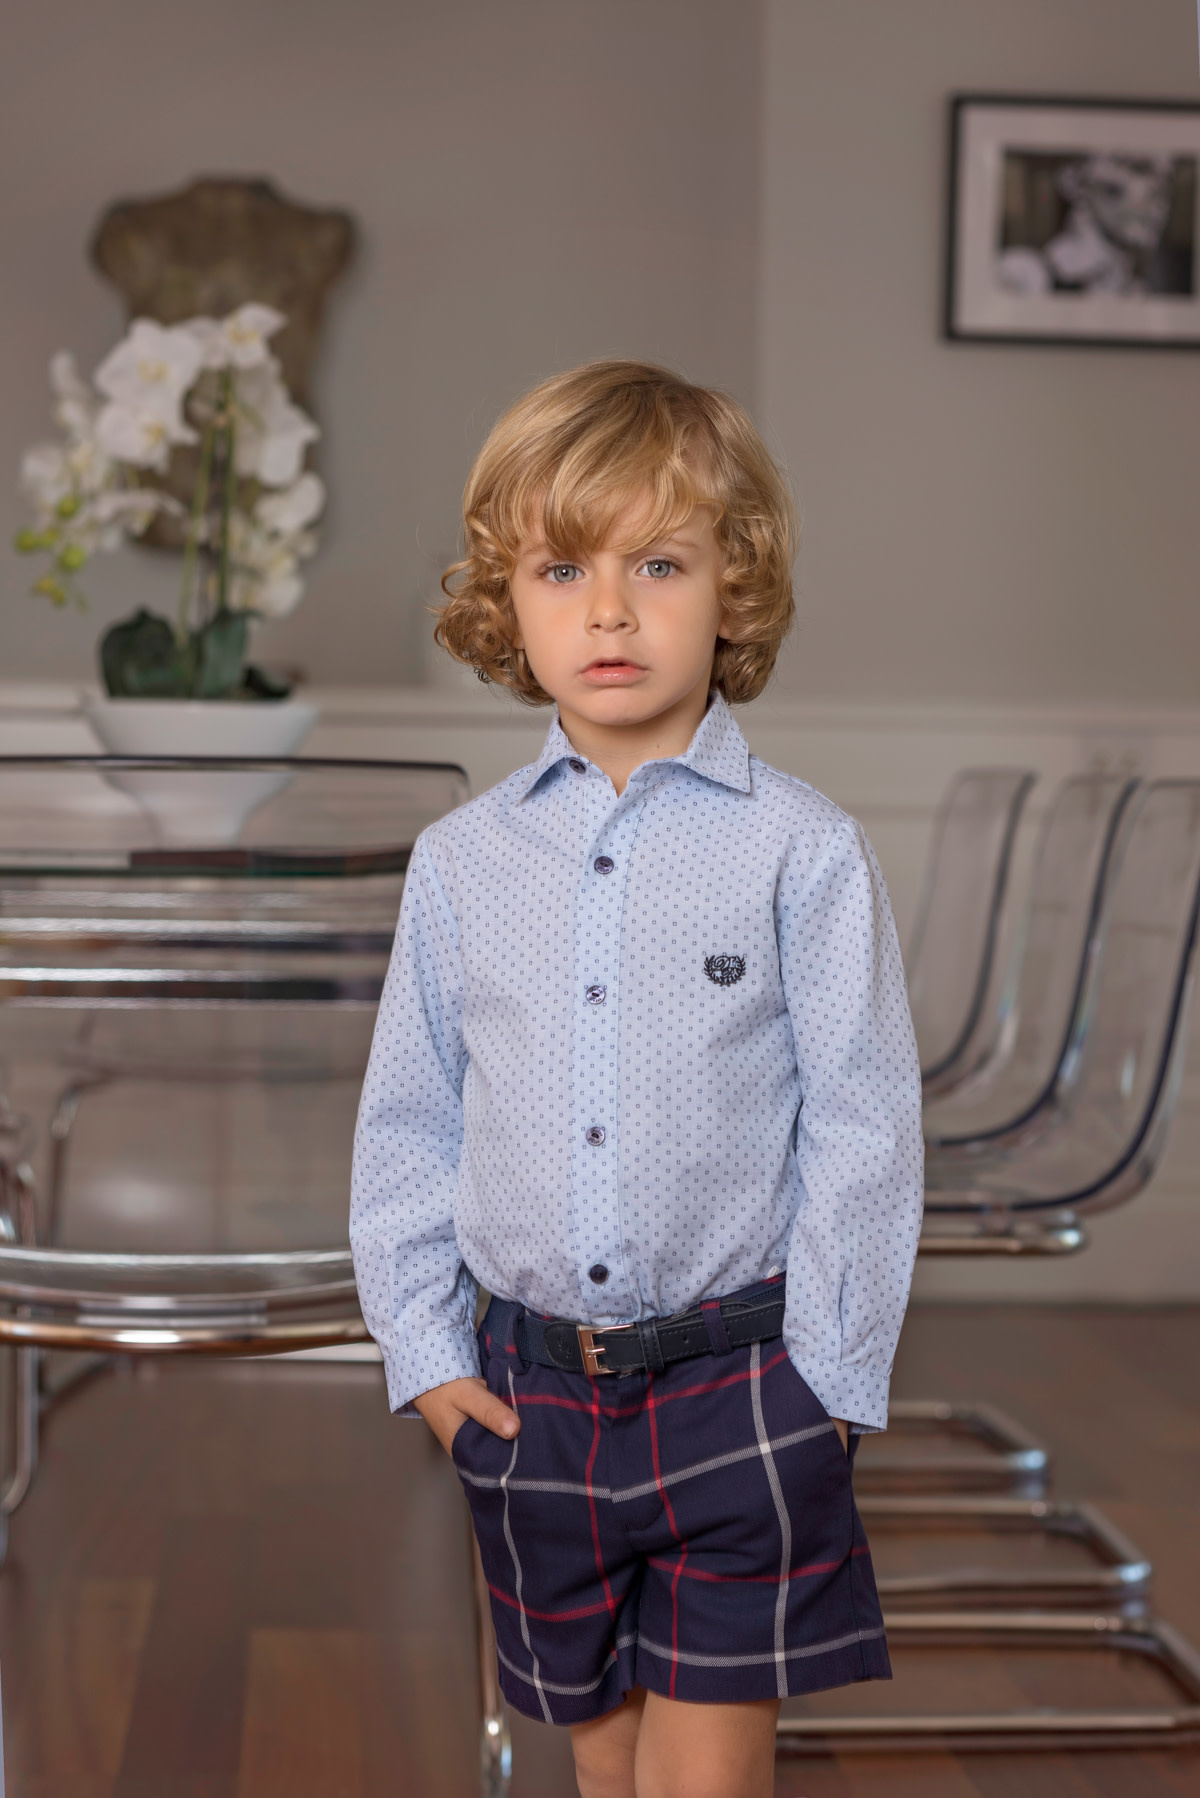 Dolce Petit Dolce Petit AW19 Boys Short and Shirt Set (BELT NOT INCLUDED) 3 Years 2113/2